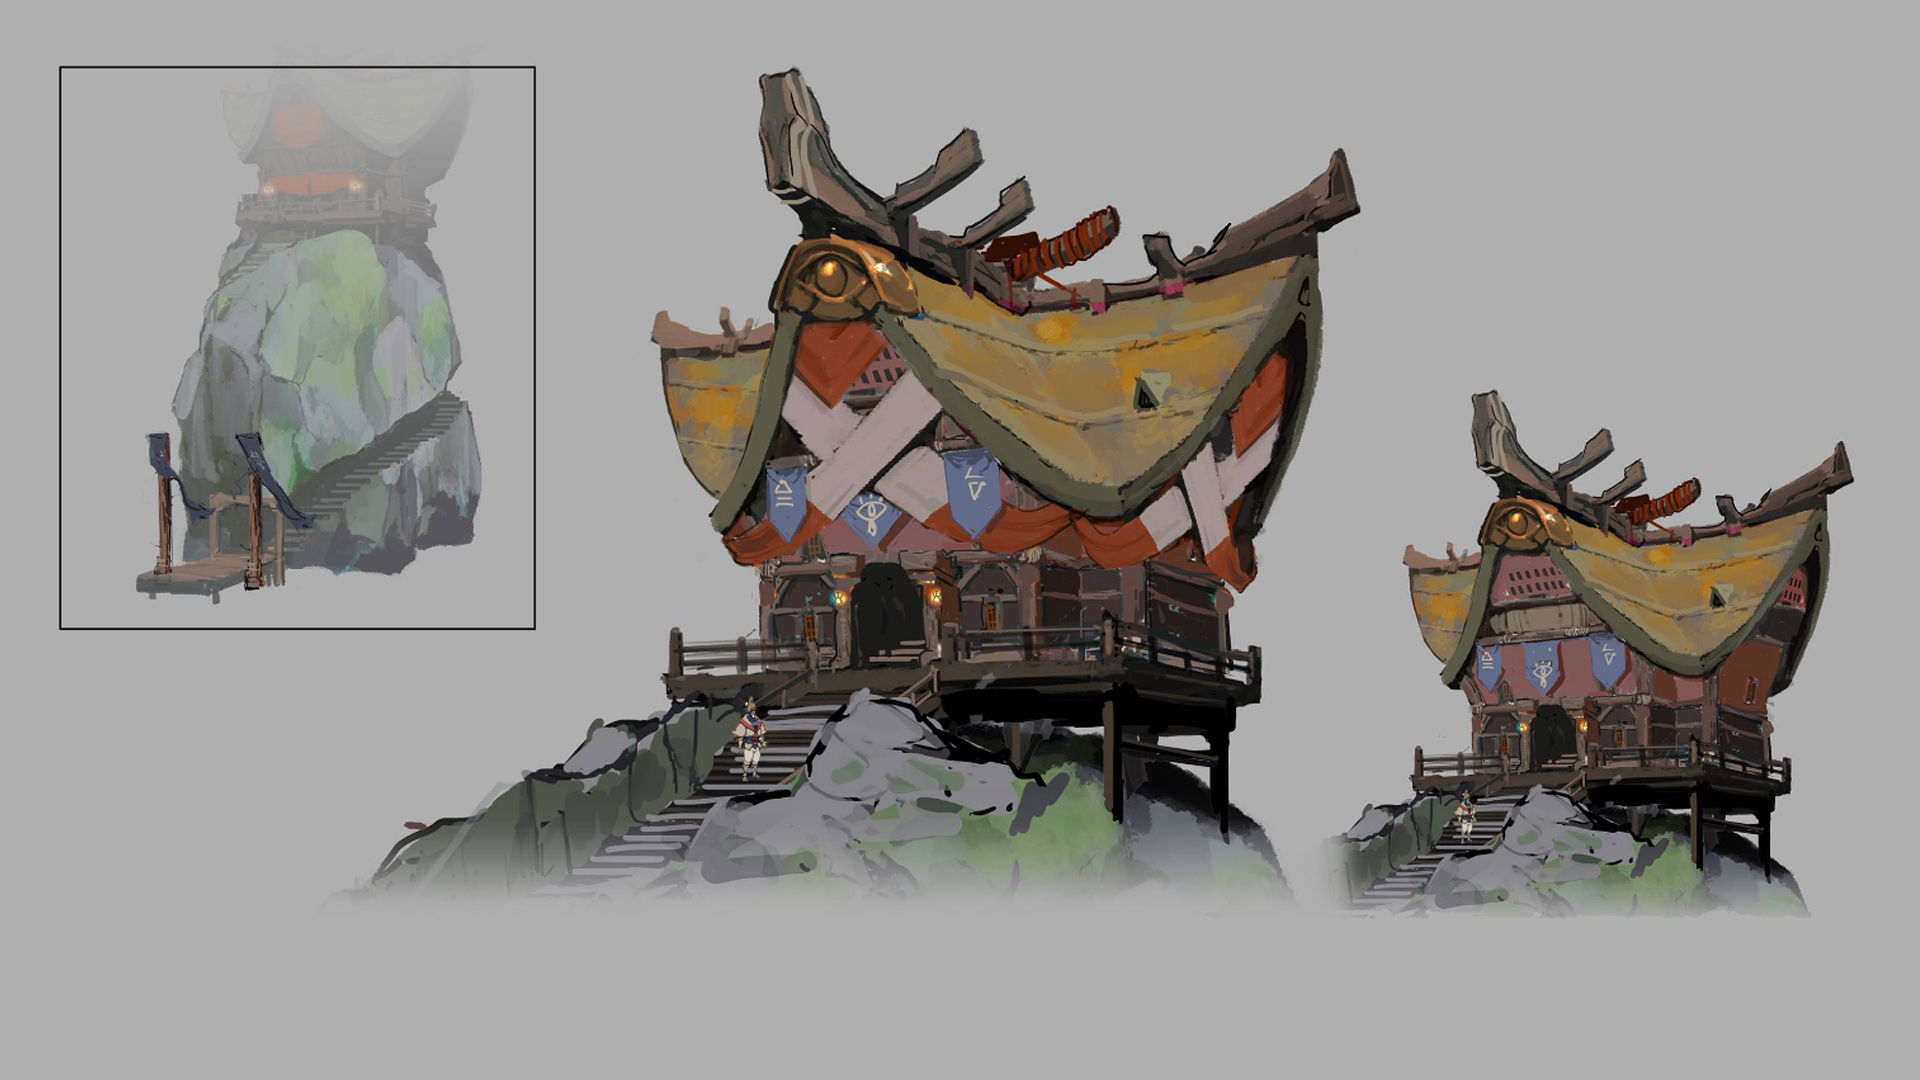 Concept Art For A Sheikah Building In Breath Of The Wild